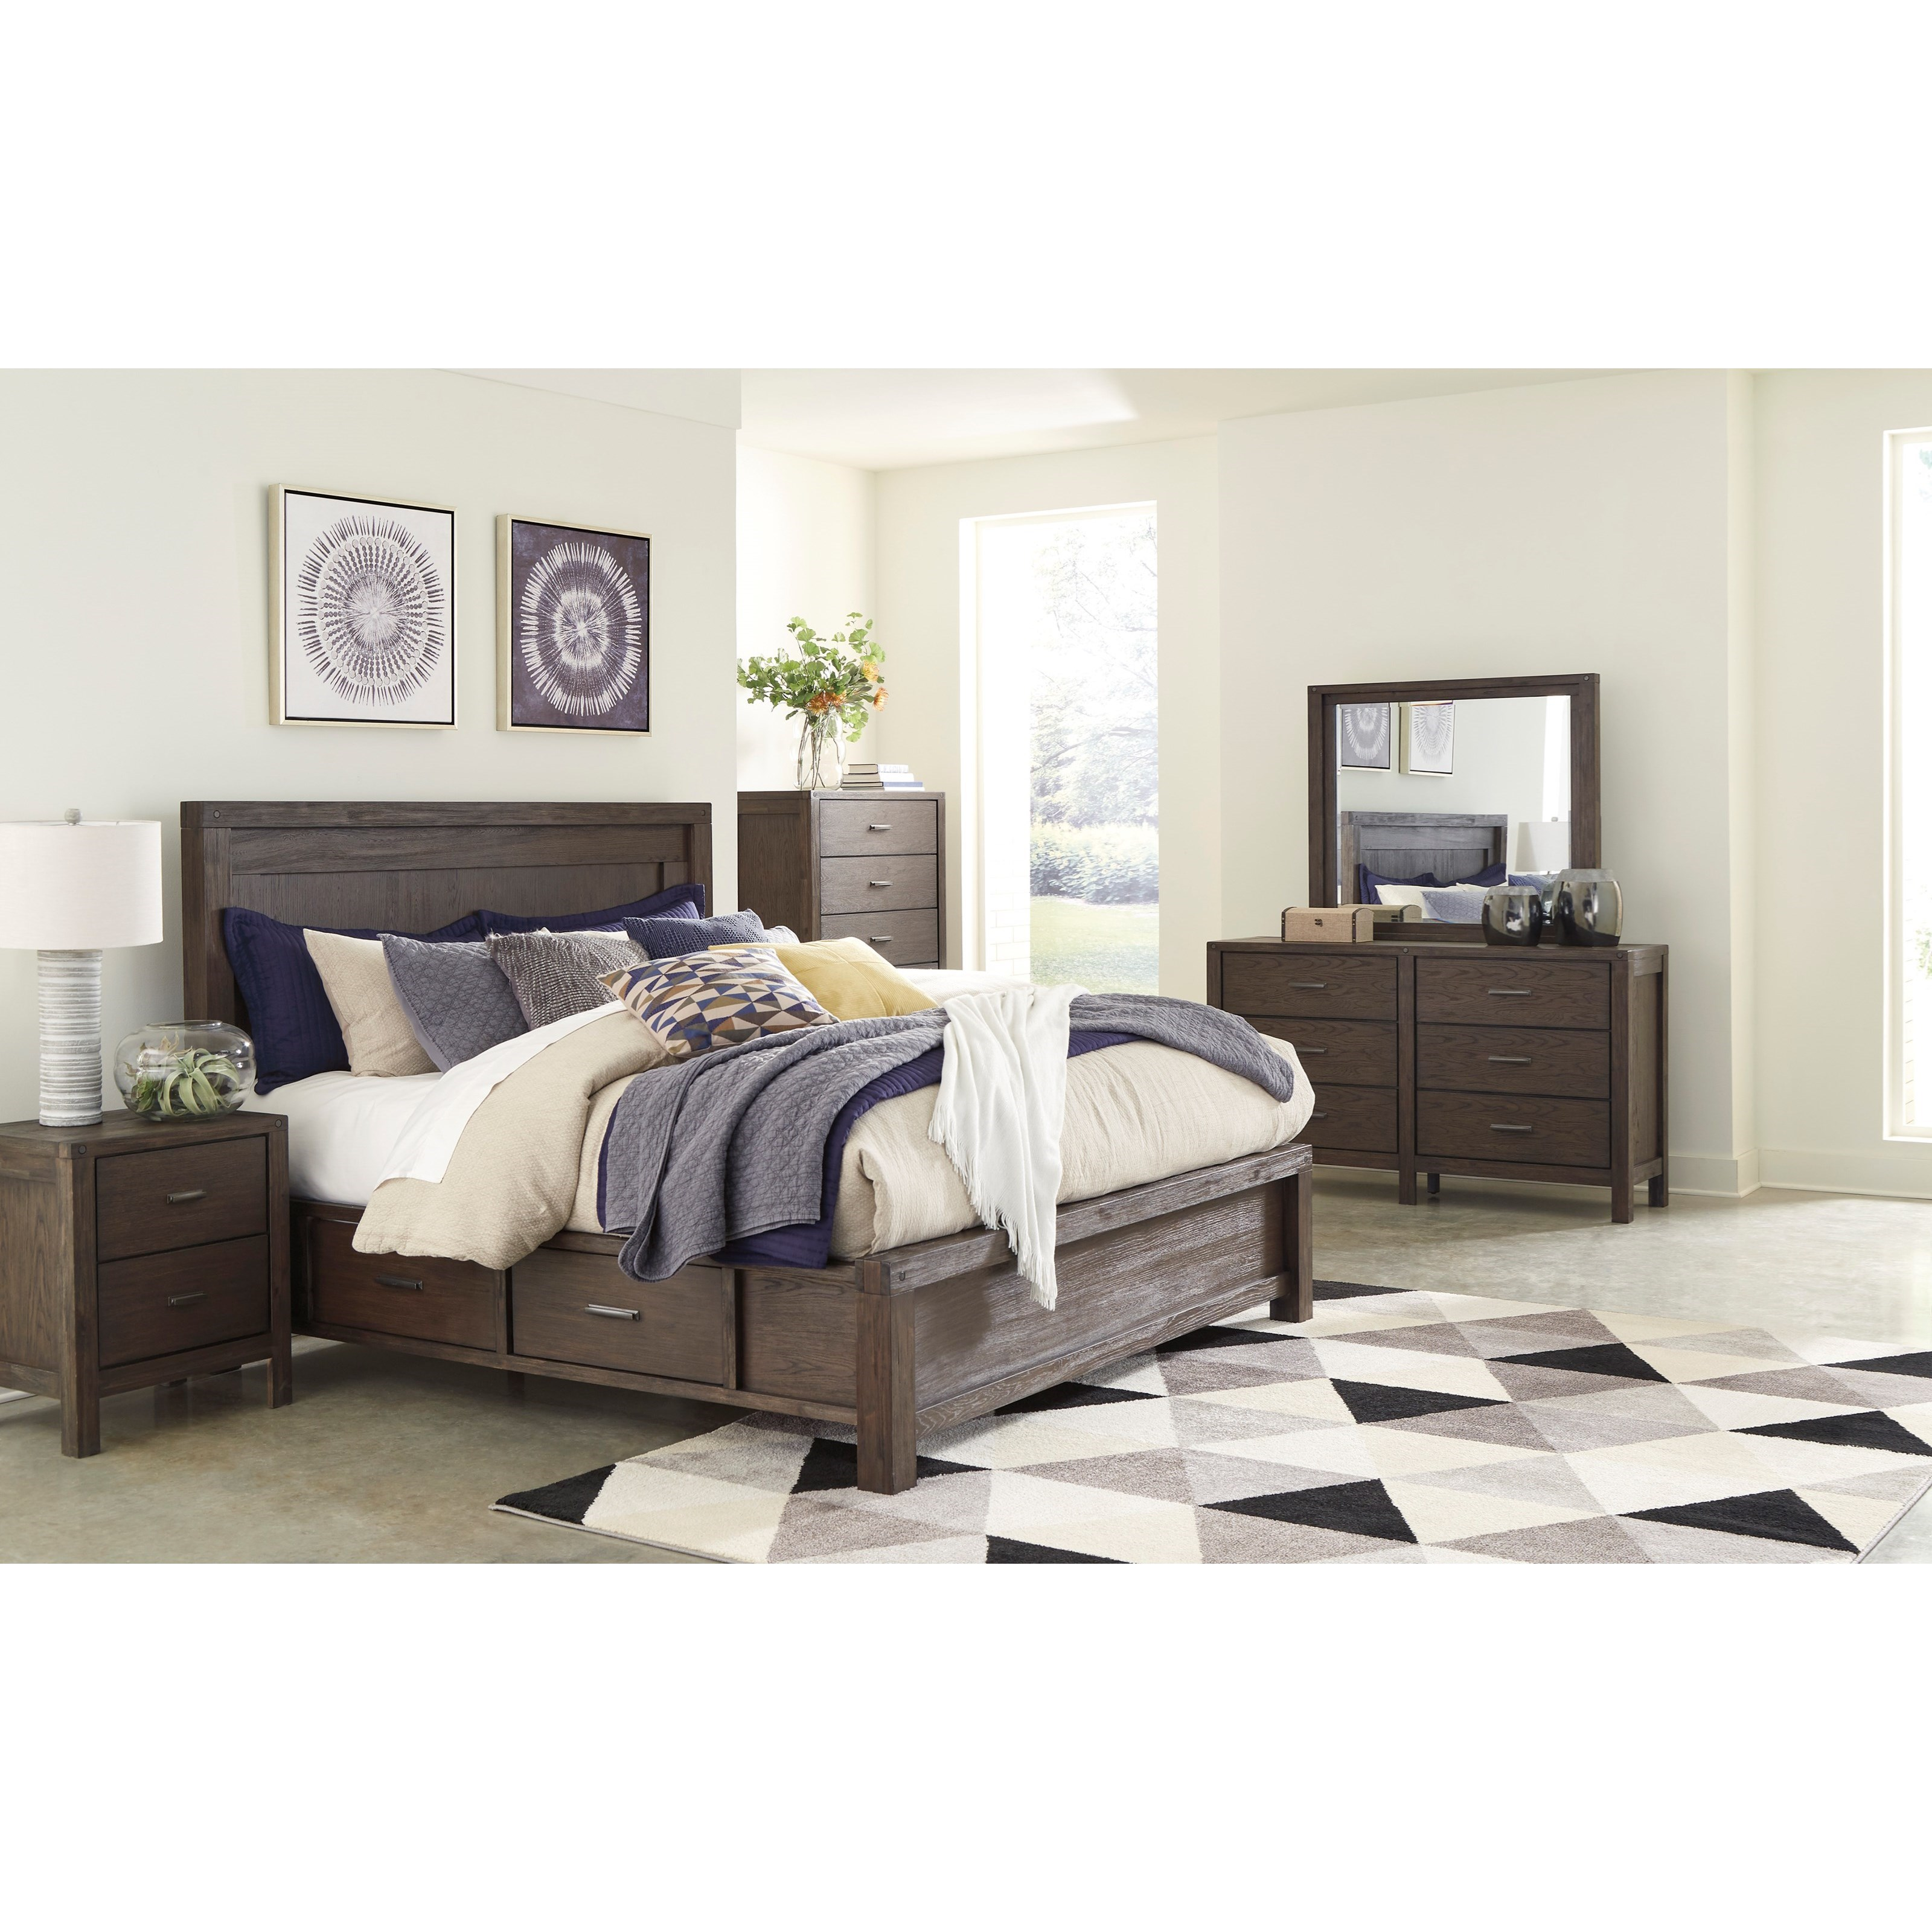 Dellbeck Queen Bedroom Group by Millennium at Northeast Factory Direct